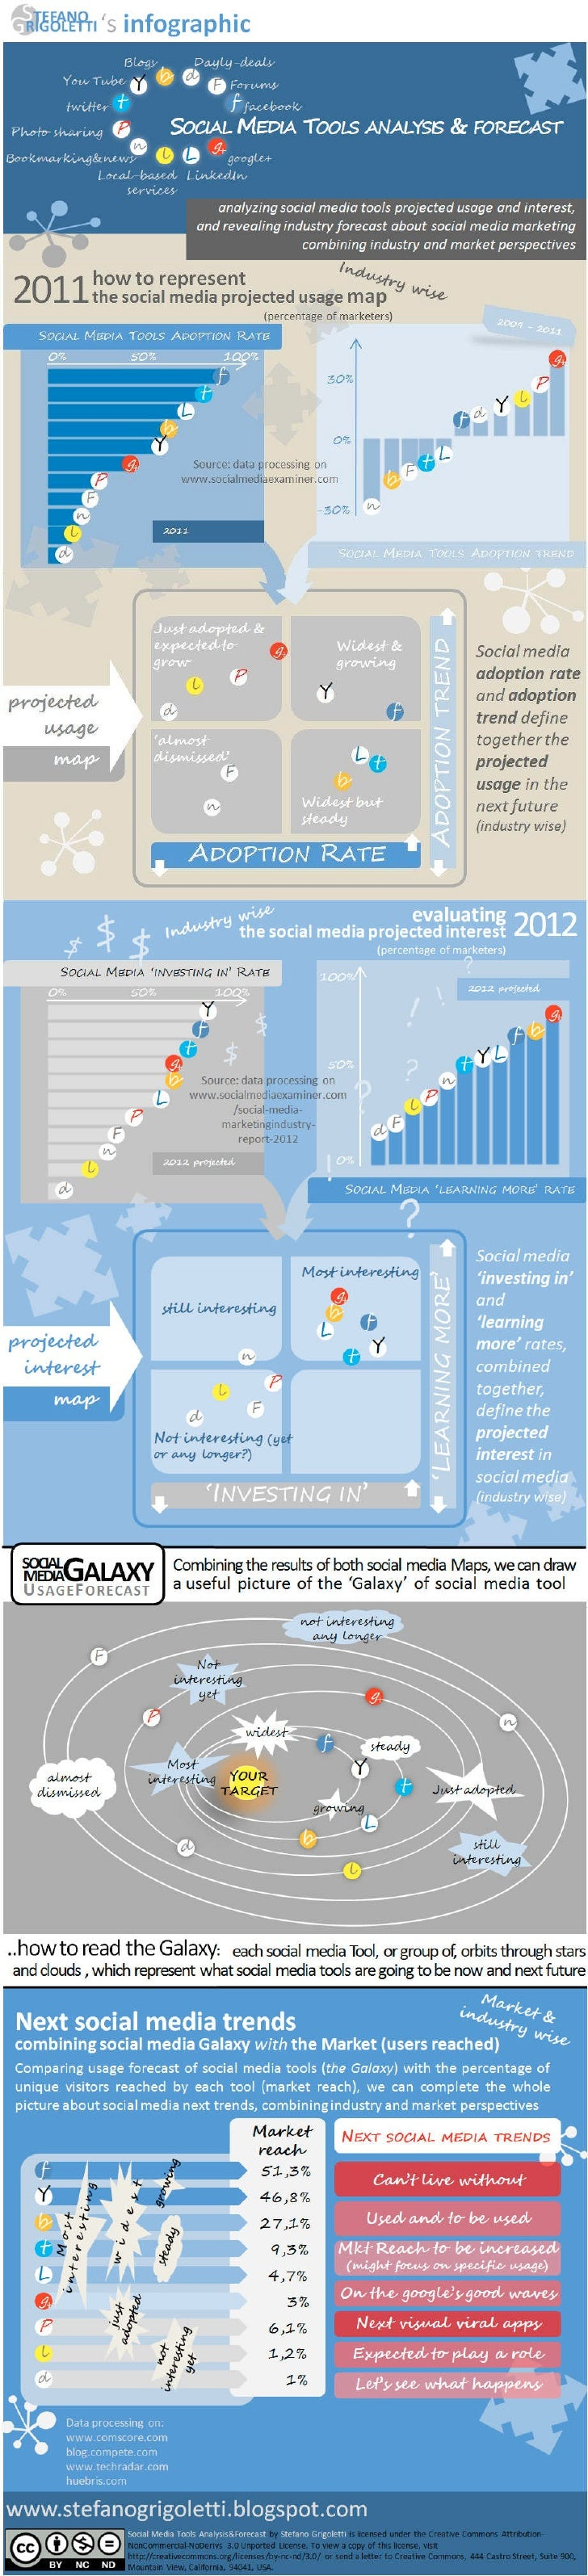 Social Media Industry & Market Forecast - Infographic